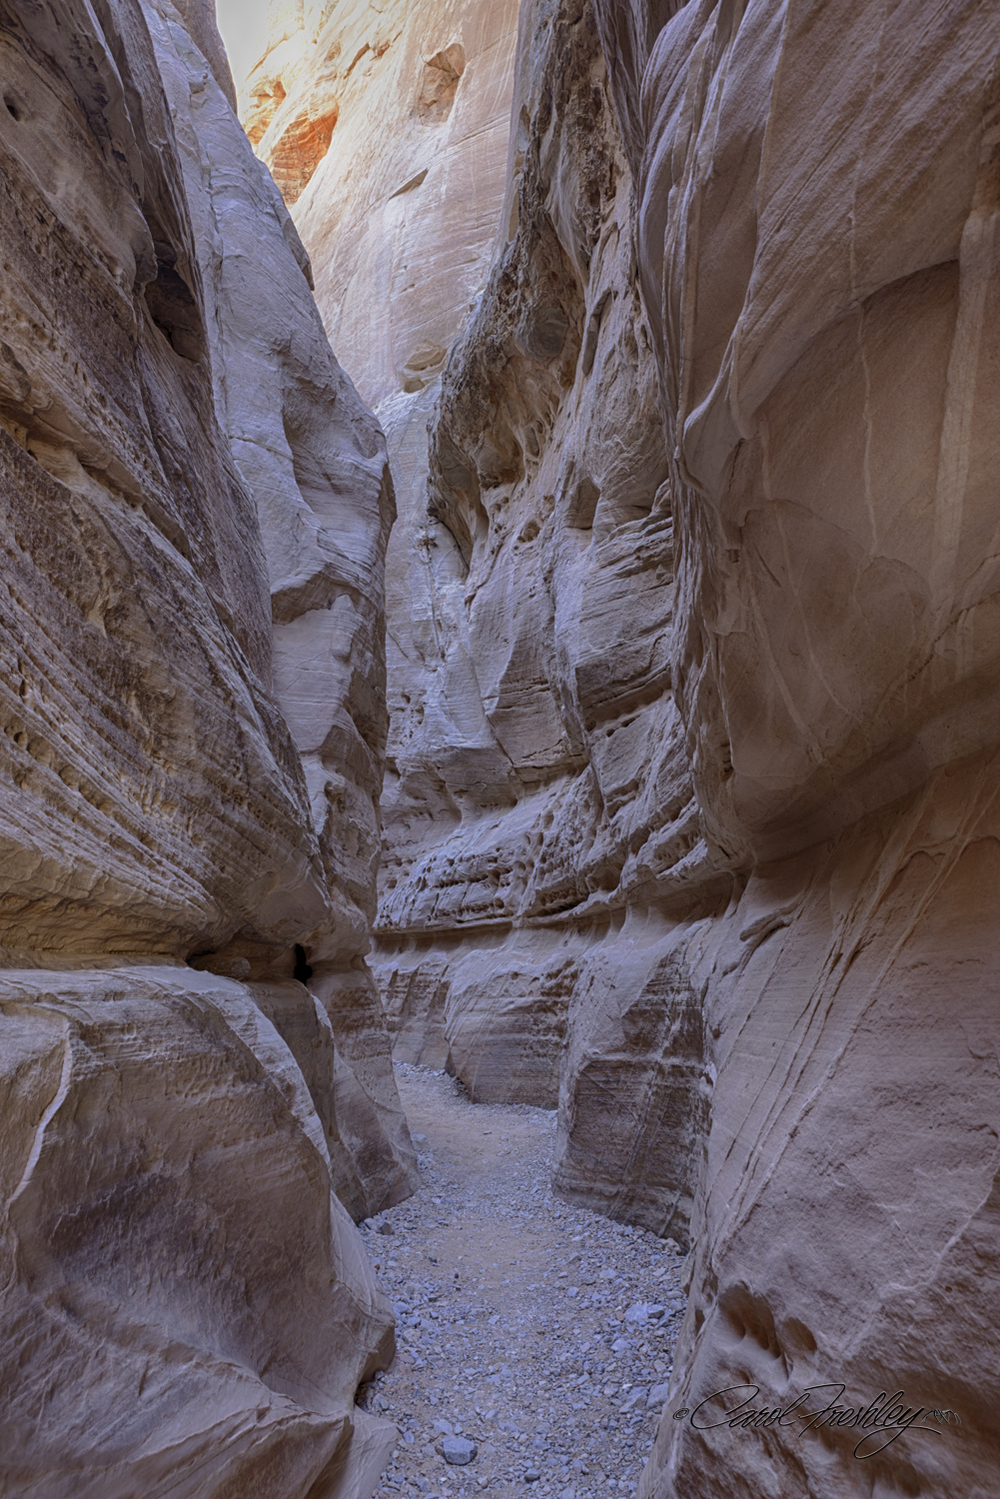 This was the only area where I found what I would call a true slot canyon.  It was short and not as colorful and interesting as Antelope Canyon.